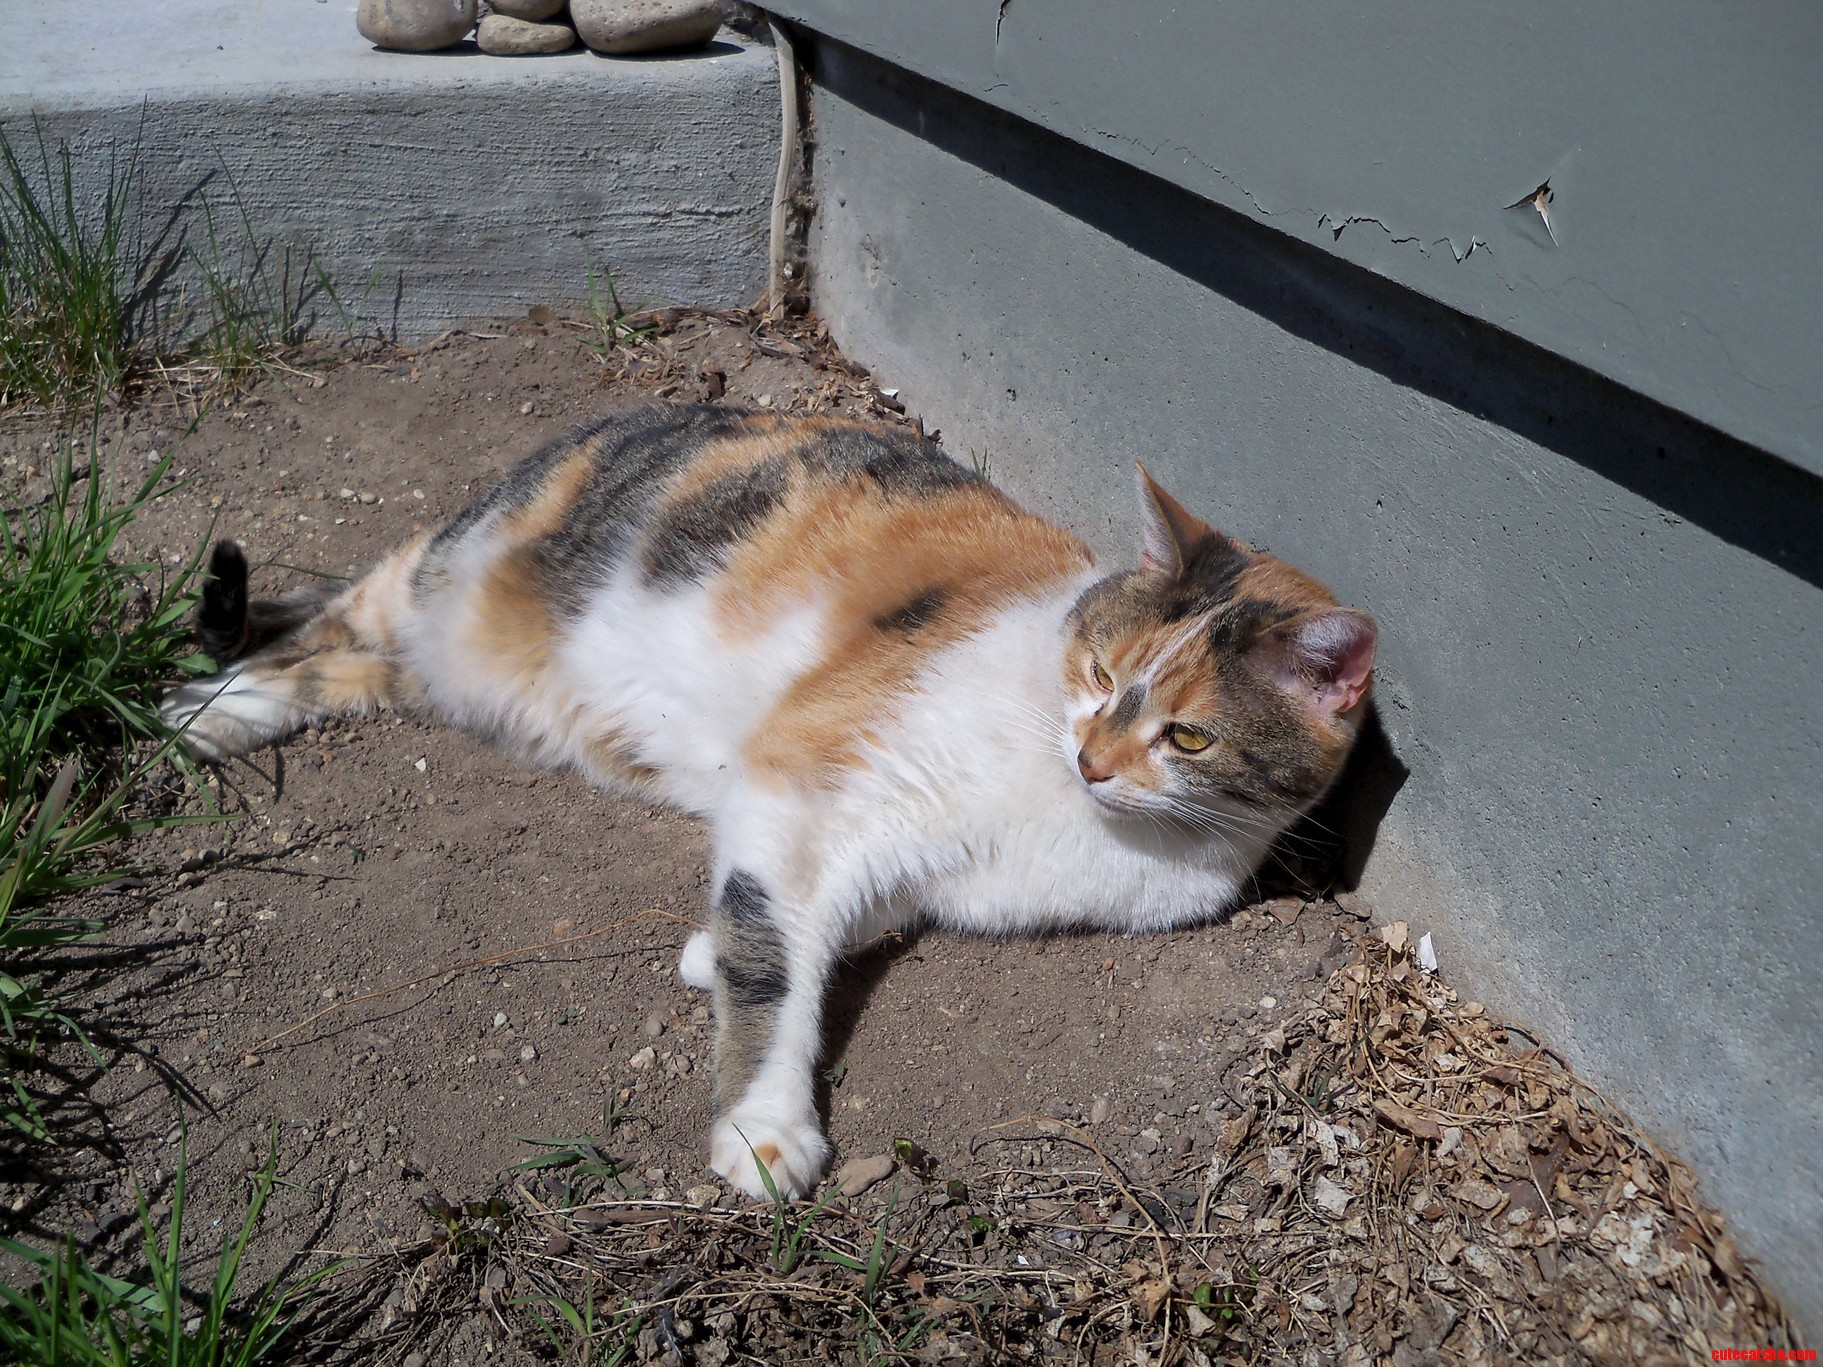 My cat abby loves a good dirt patch